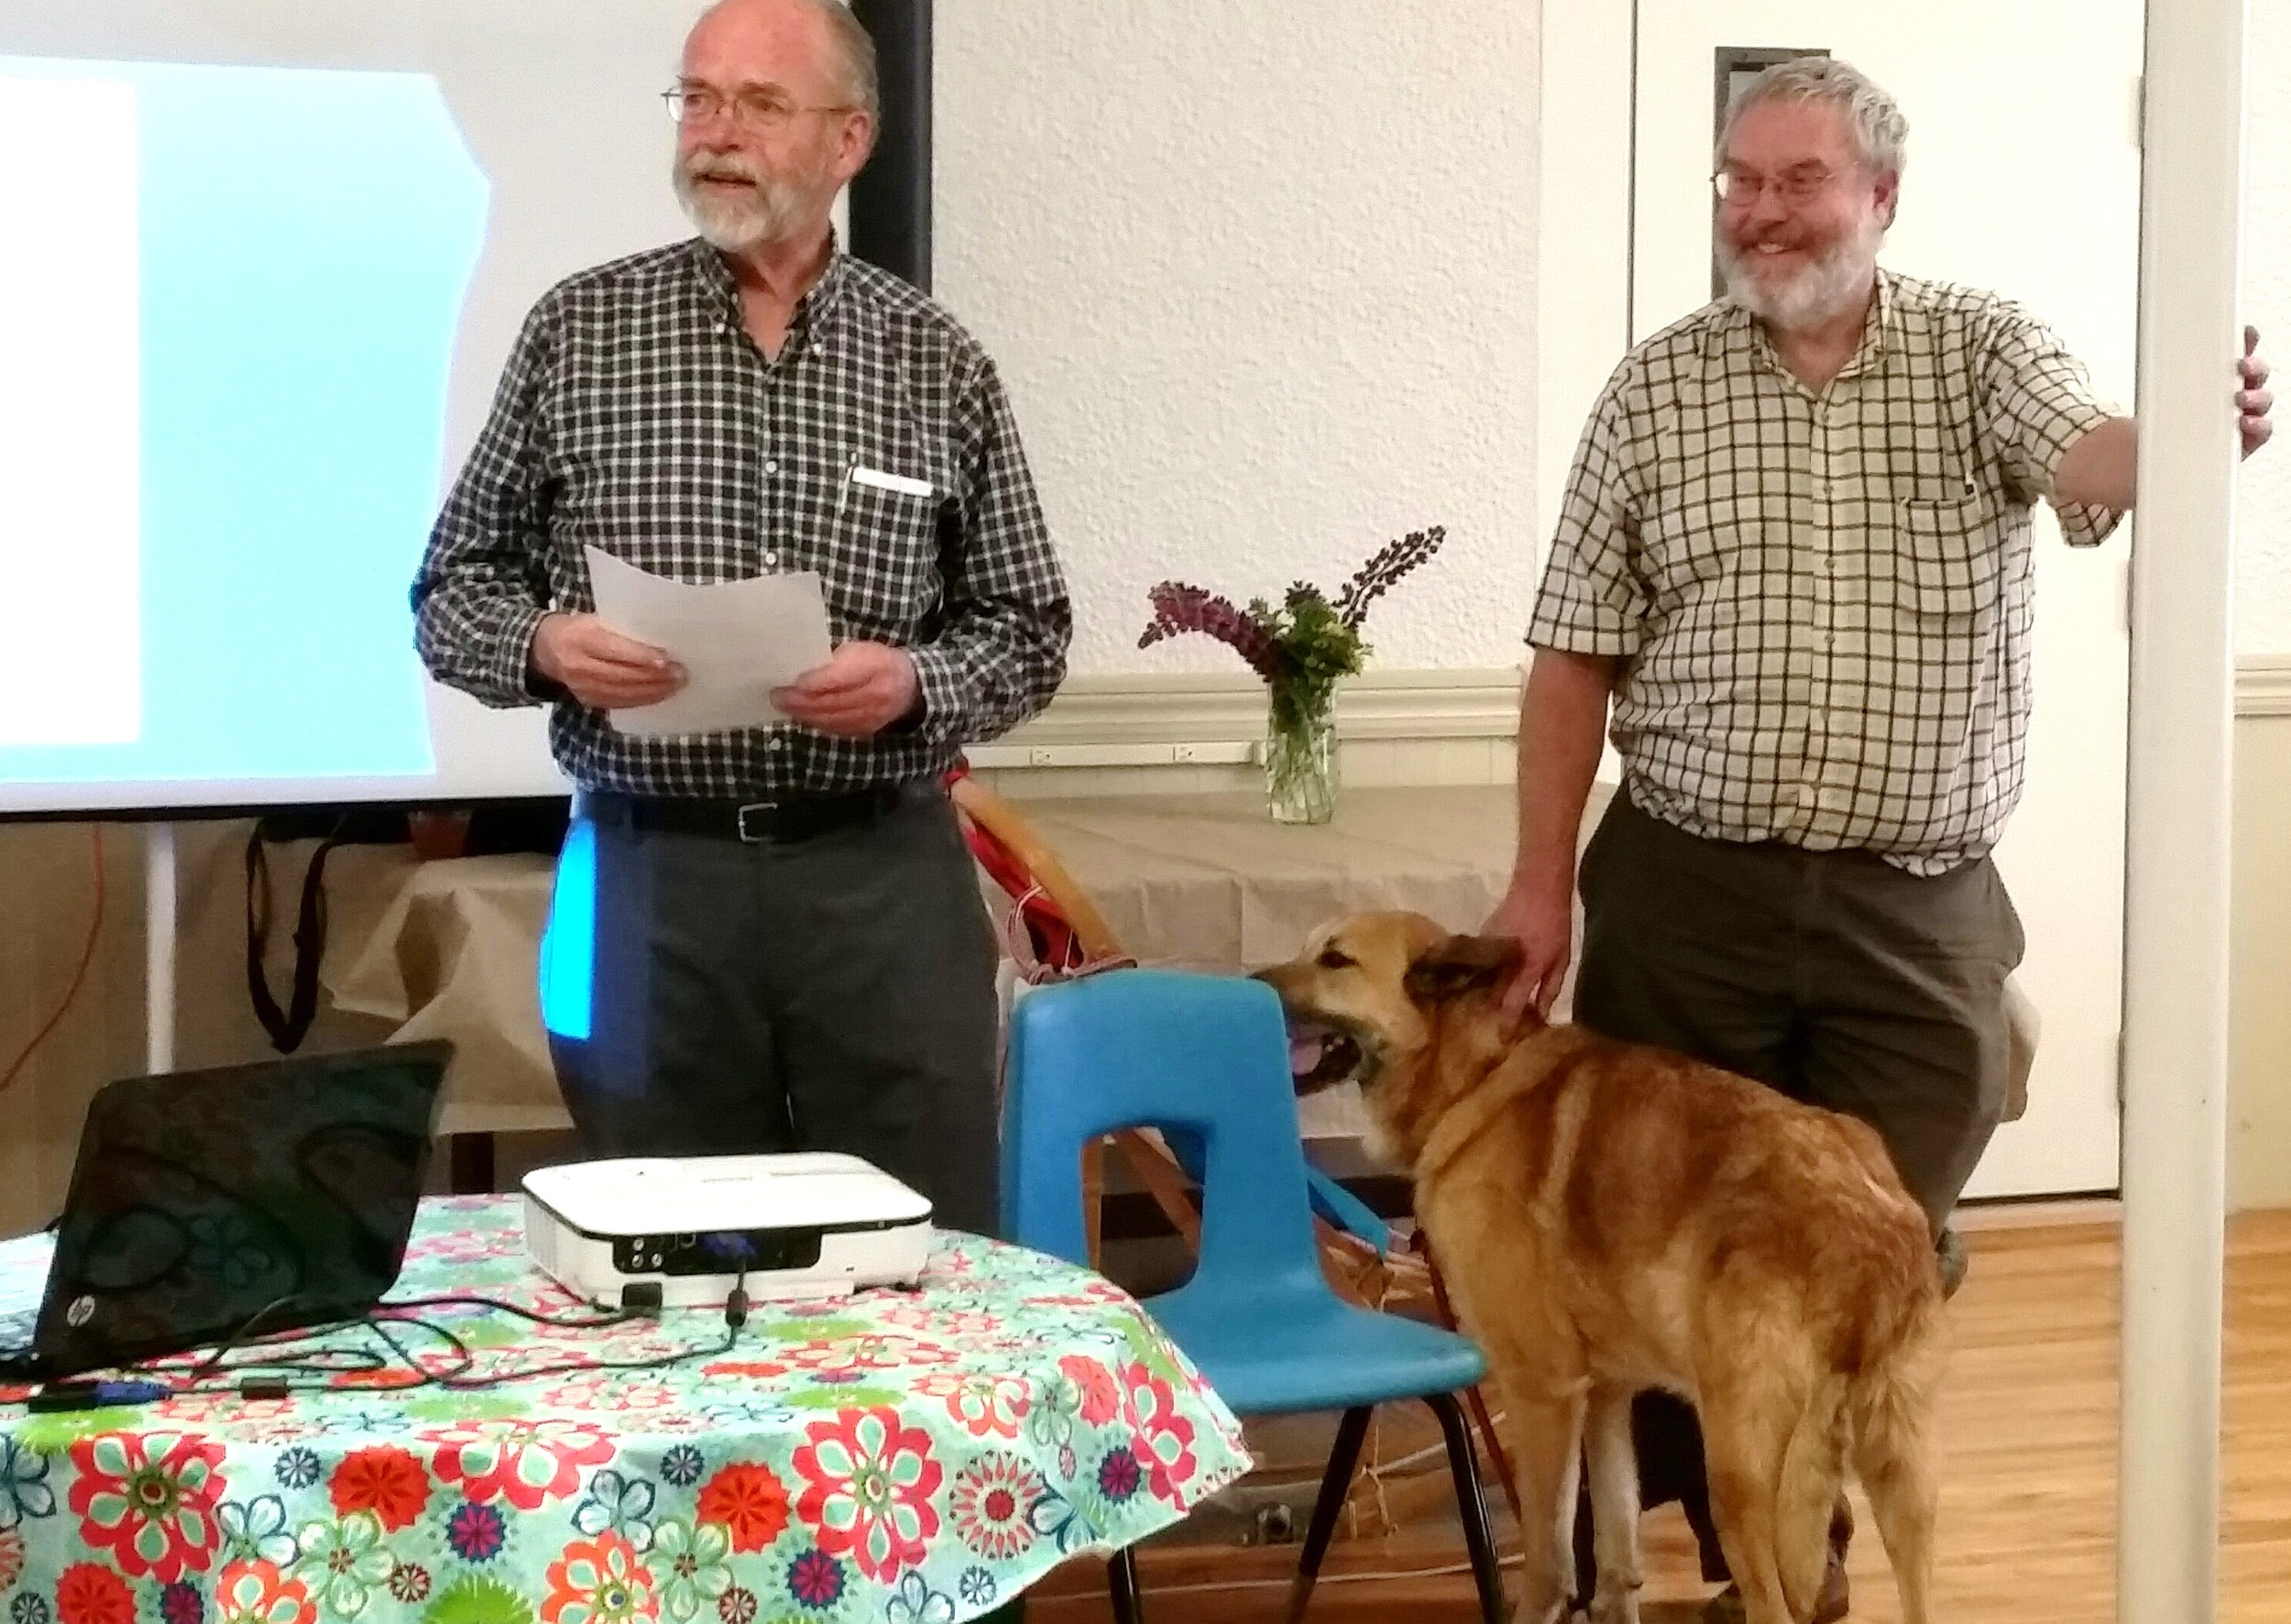 """On June 15, 2016, the Lisbon Area Historical Society was pleased to host a New Hampshire Humanities Council program on the history of dog sledding and the role of New Hampshire's State dog, the Chinook . At left is Cary Clark, LAHS Board of Trustees member introducing presenter Bob Cottrell and his Chinook, """"Tug."""""""